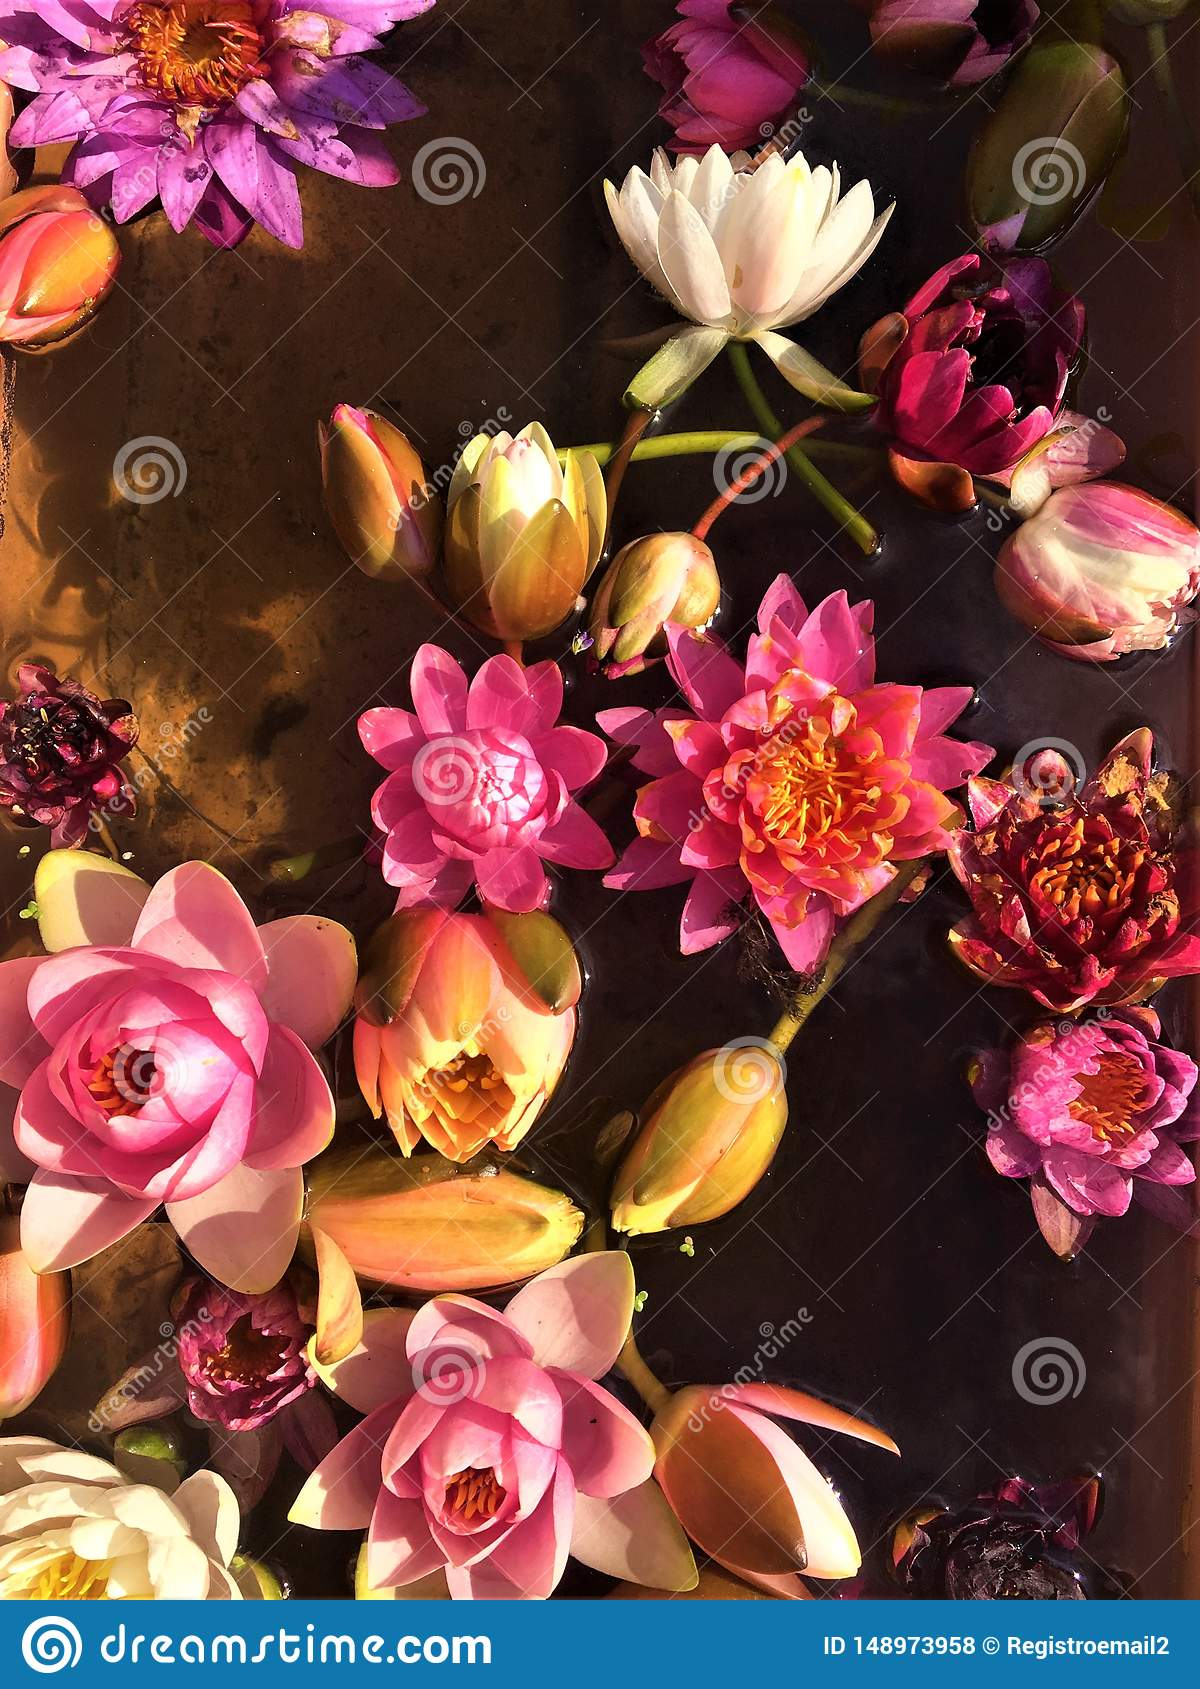 Fairytale, magic, spring, fragrance, colours, pattern and flower `s soul